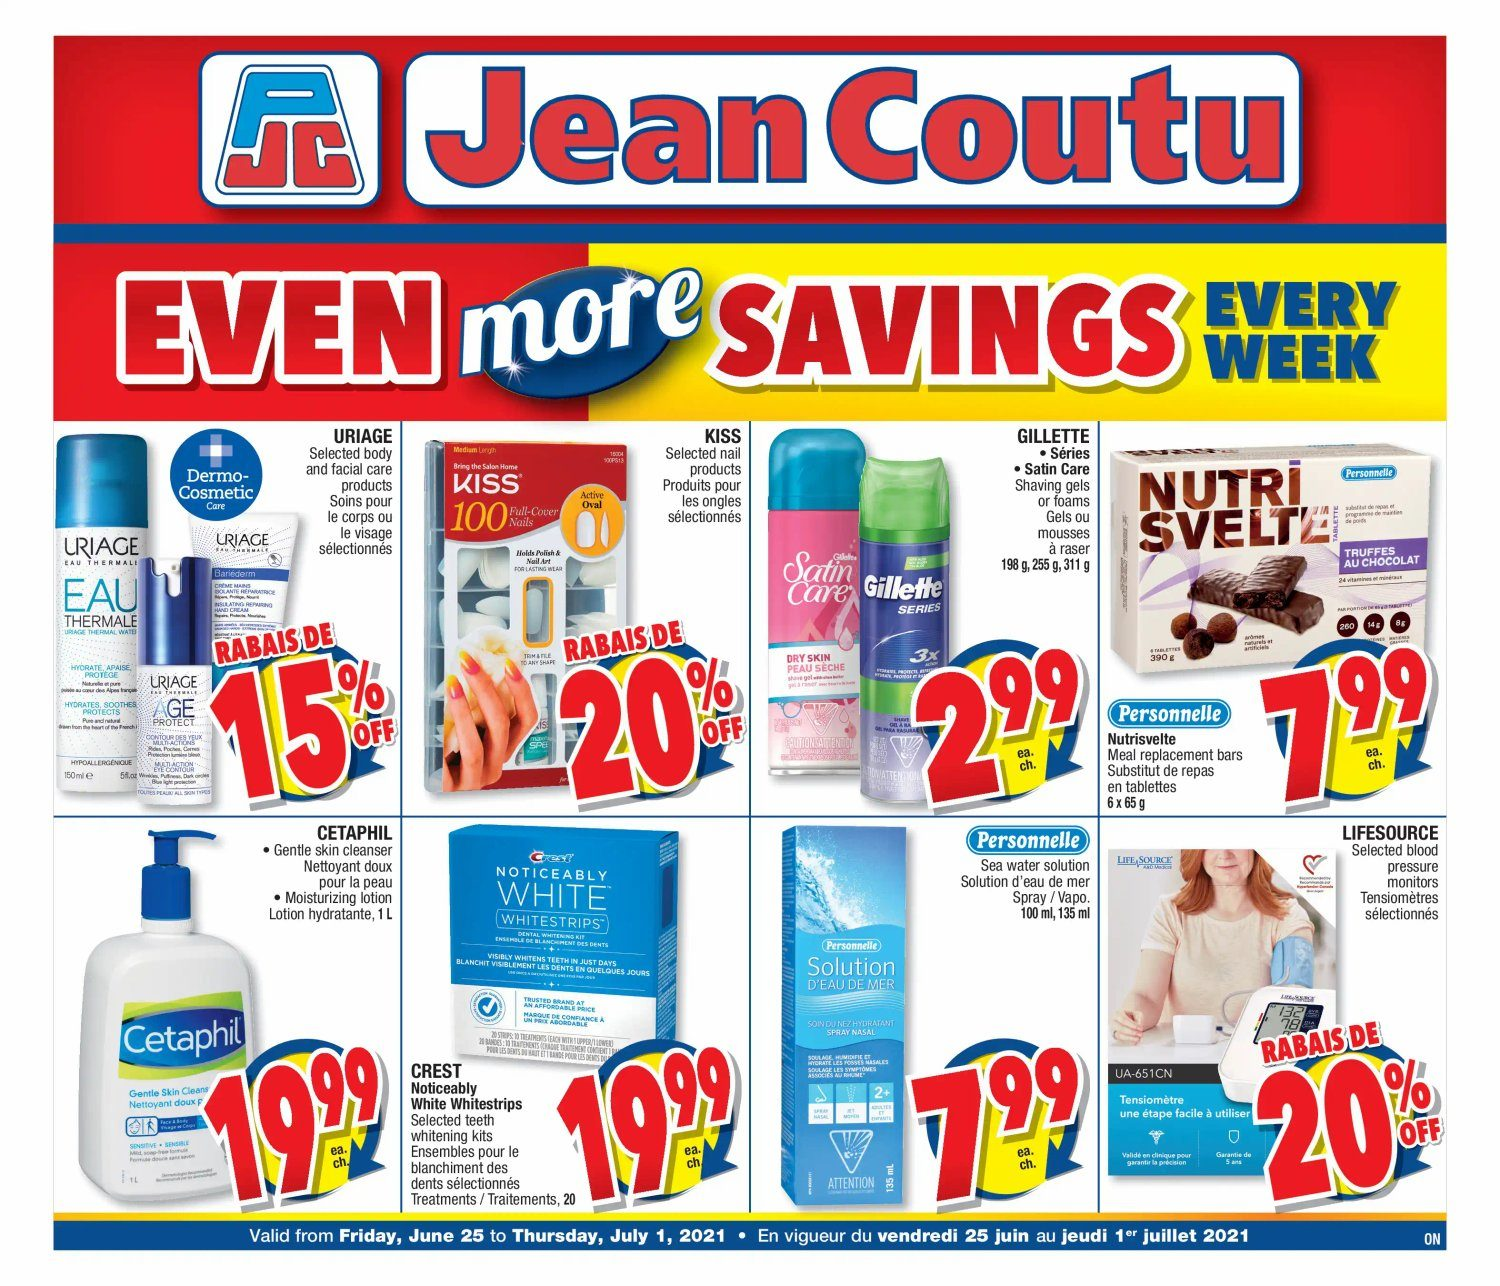 Jean Coutu - Even More Savings - Weekly Flyer Specials